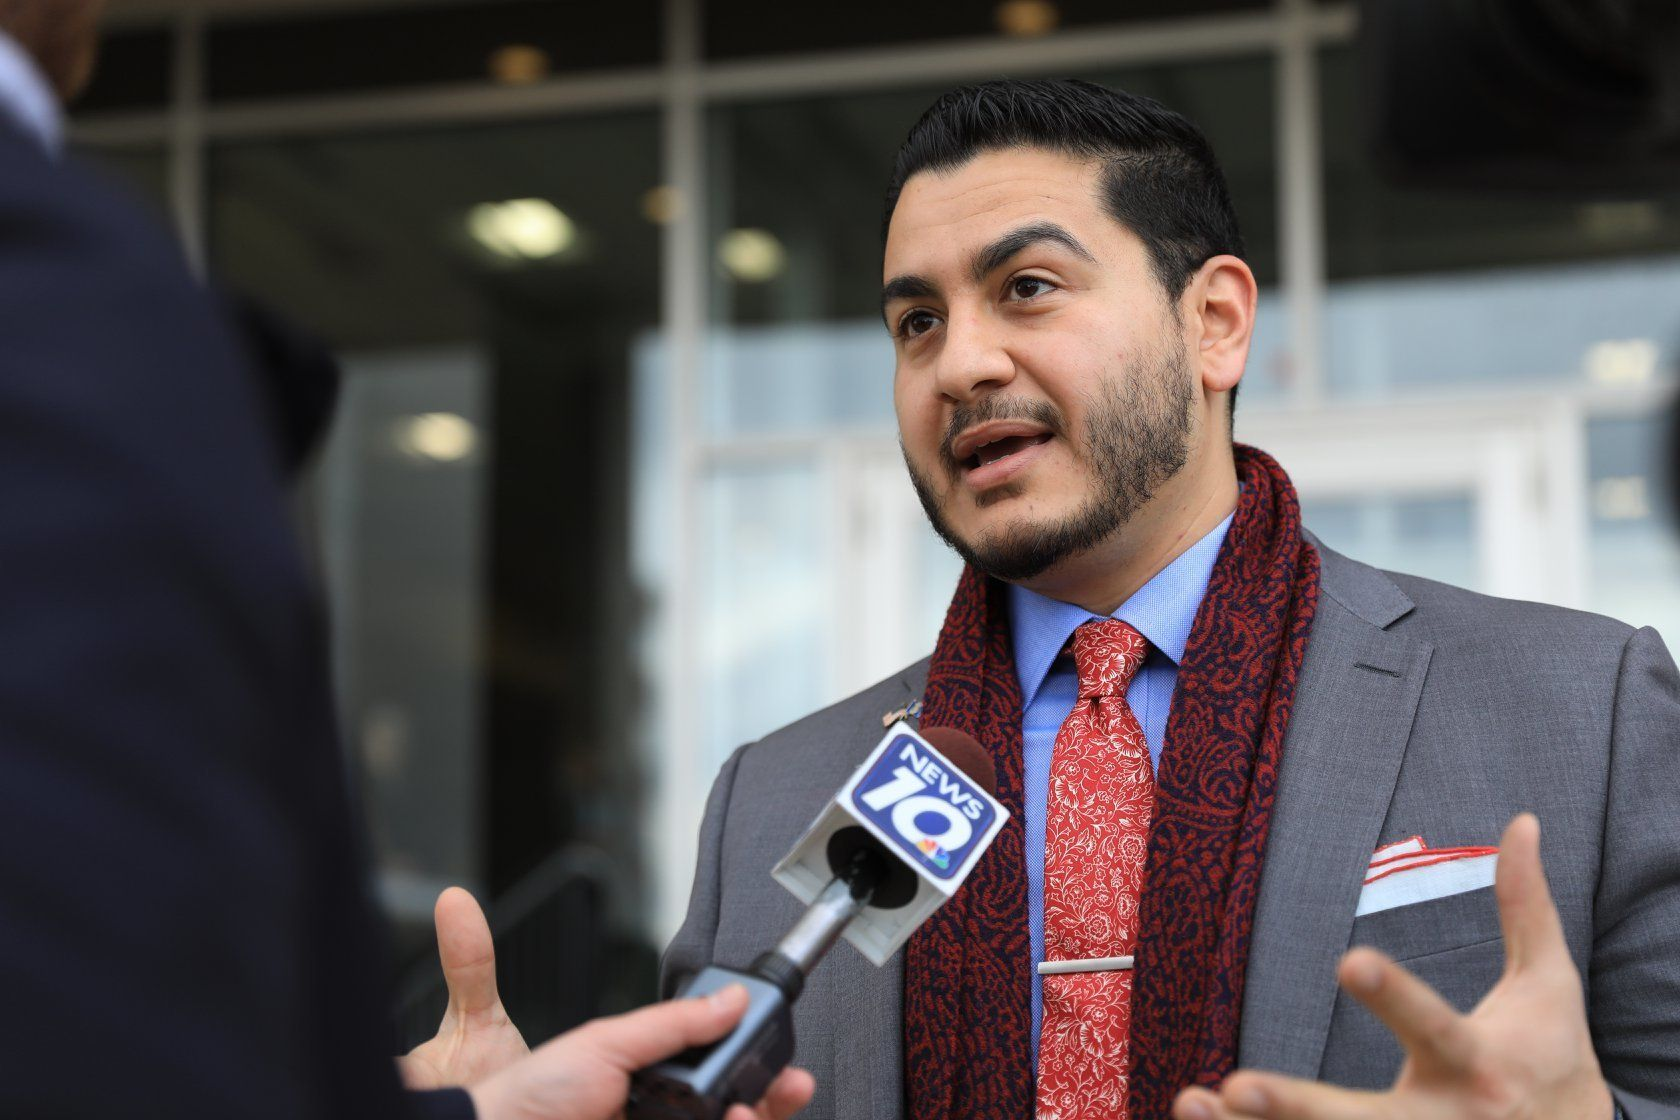 Democrat Abdul El-Sayed, a physician running for Michigan governor, would be the country's first Muslim governor if elec